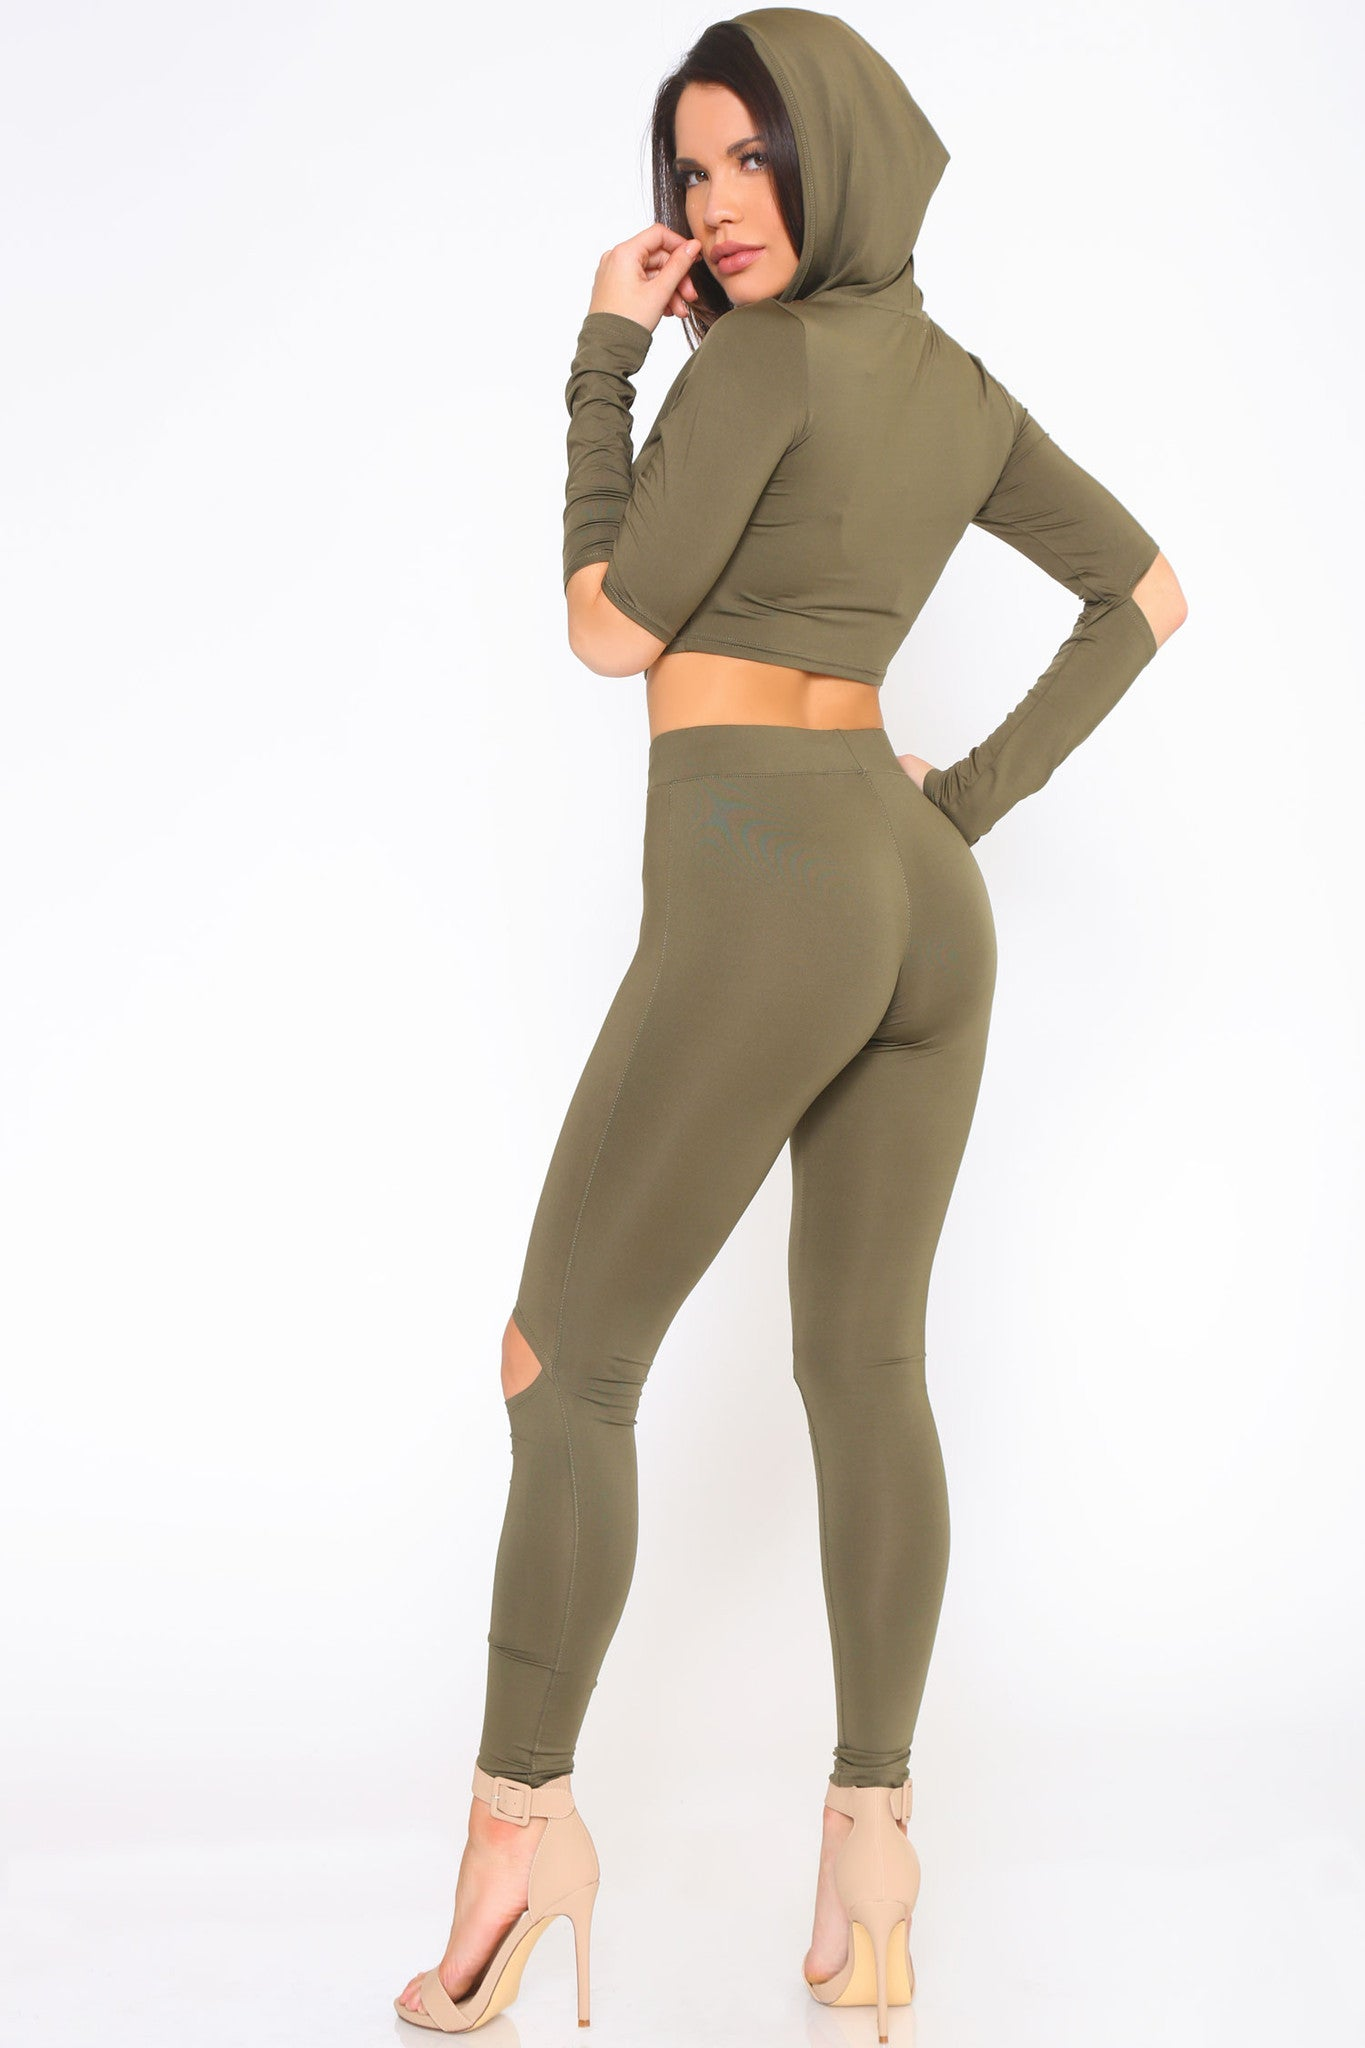 YONCE CROP TOP AND LEGGINGS SET - Glam Envy - 2